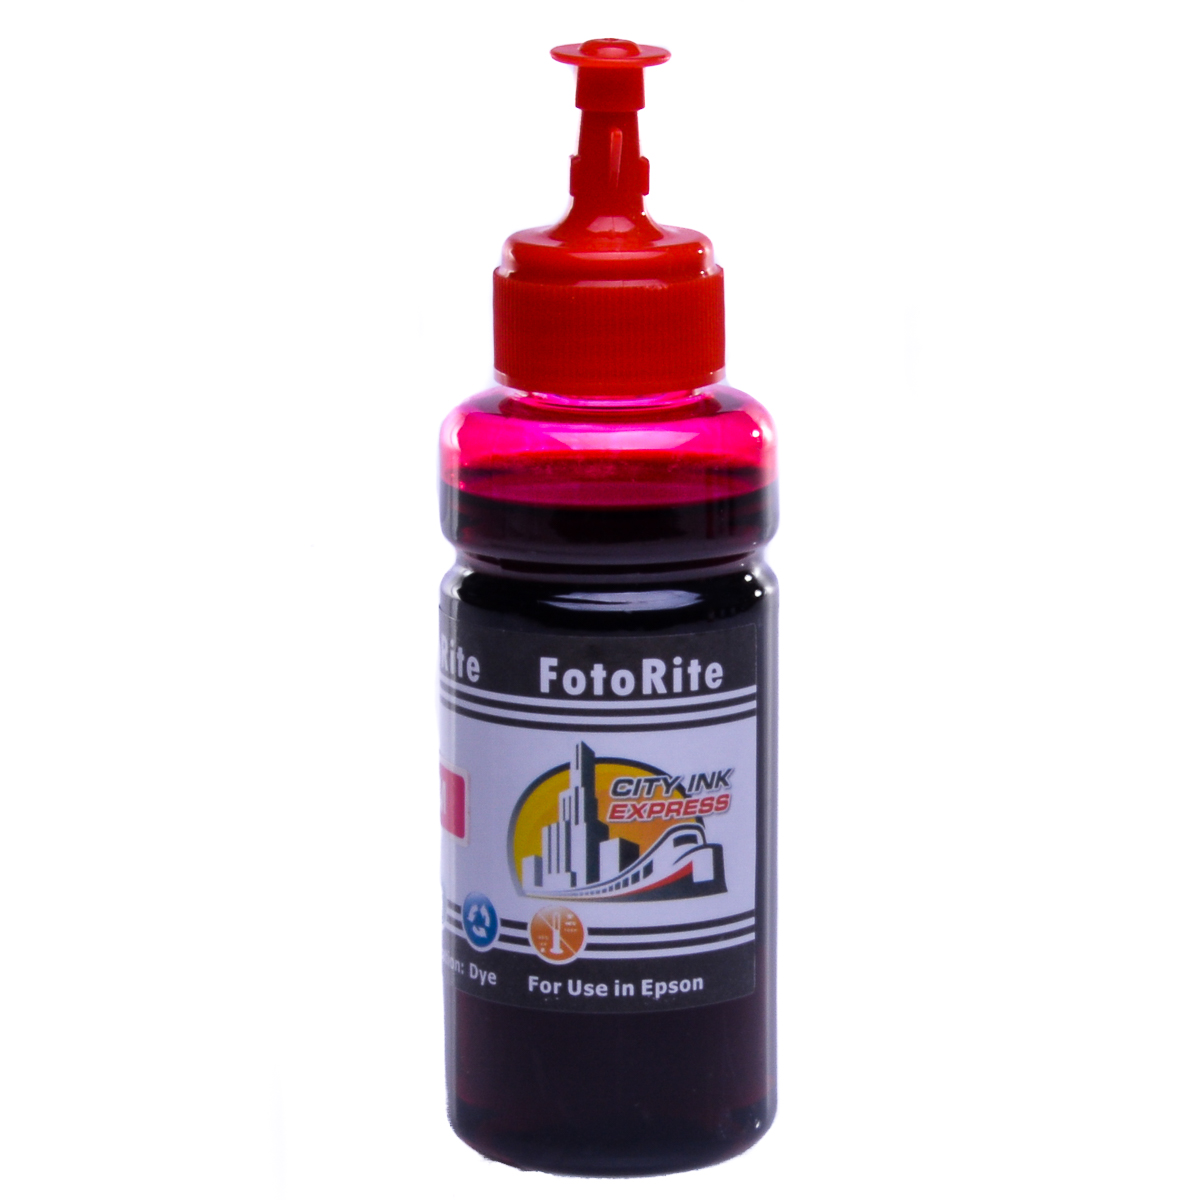 Cheap Magenta dye ink replaces Epson Stylus DX7400 - T0713